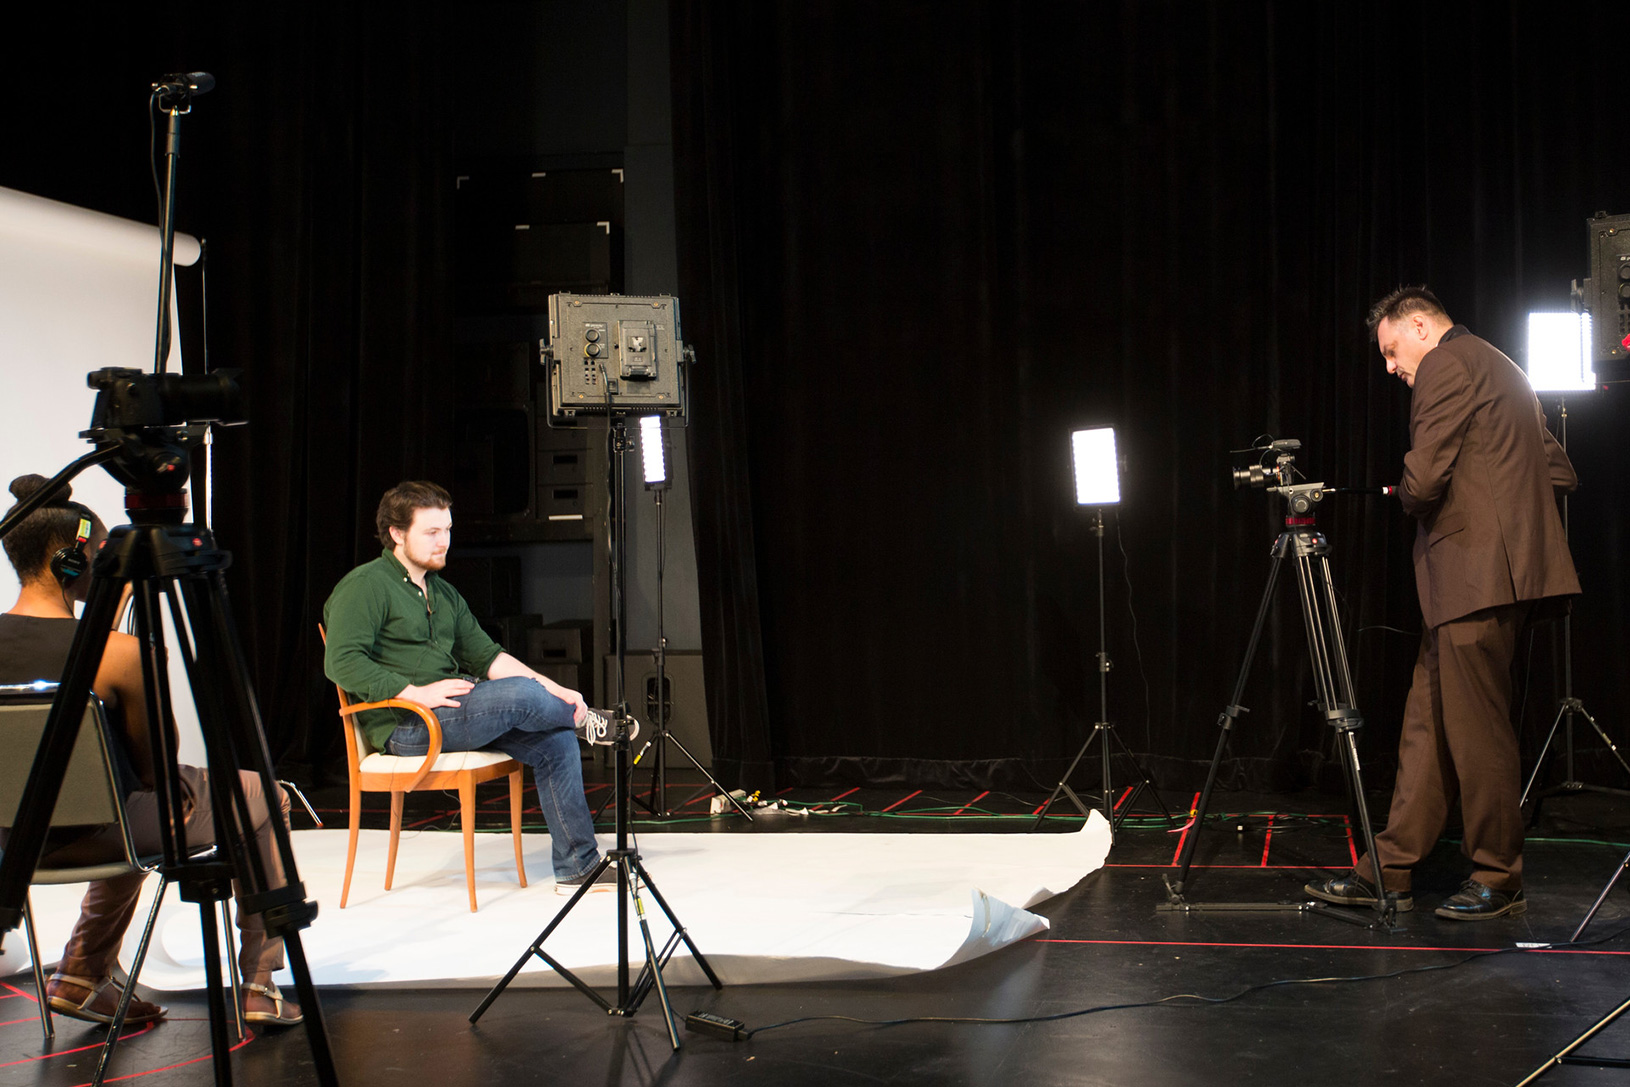 students on a video production set